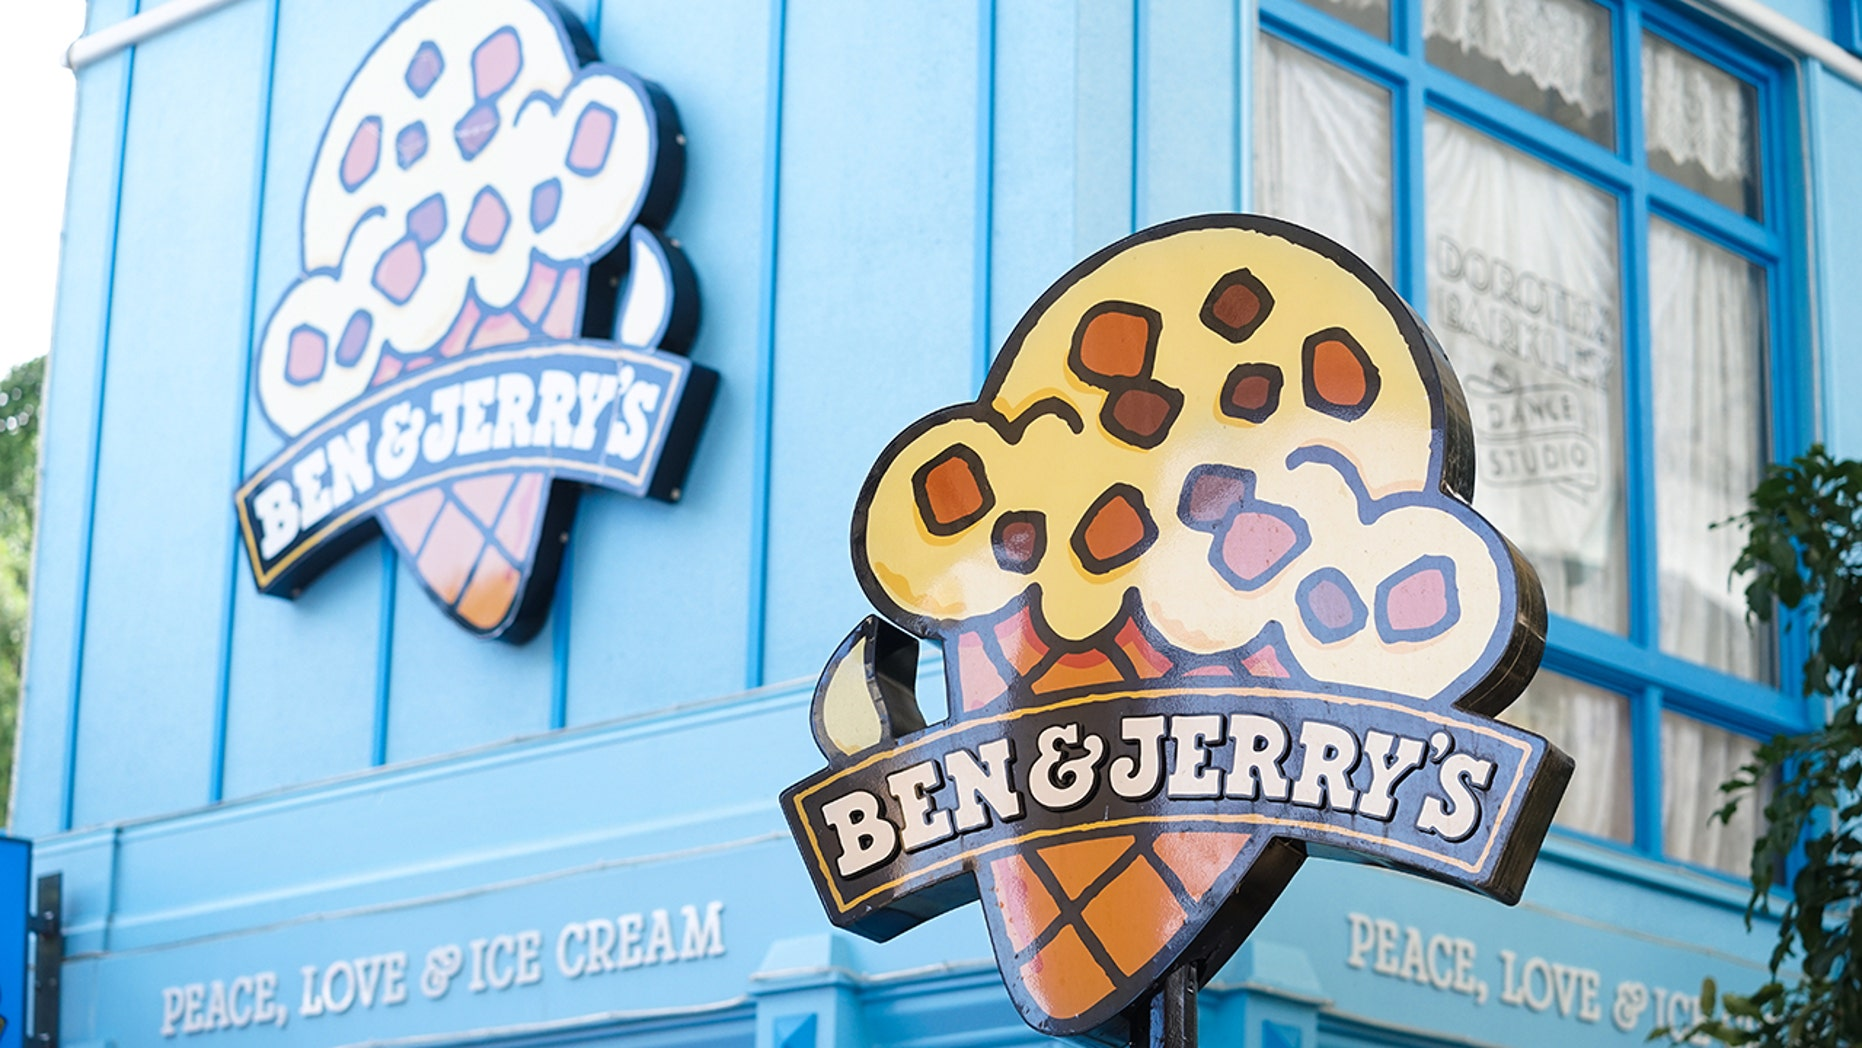 Ben & Jerry's Ice Cream Parlor in Movie World's Gold Coast. Ben & Jerry & # 39; s filed a petition to cancel previous marijuana convictions